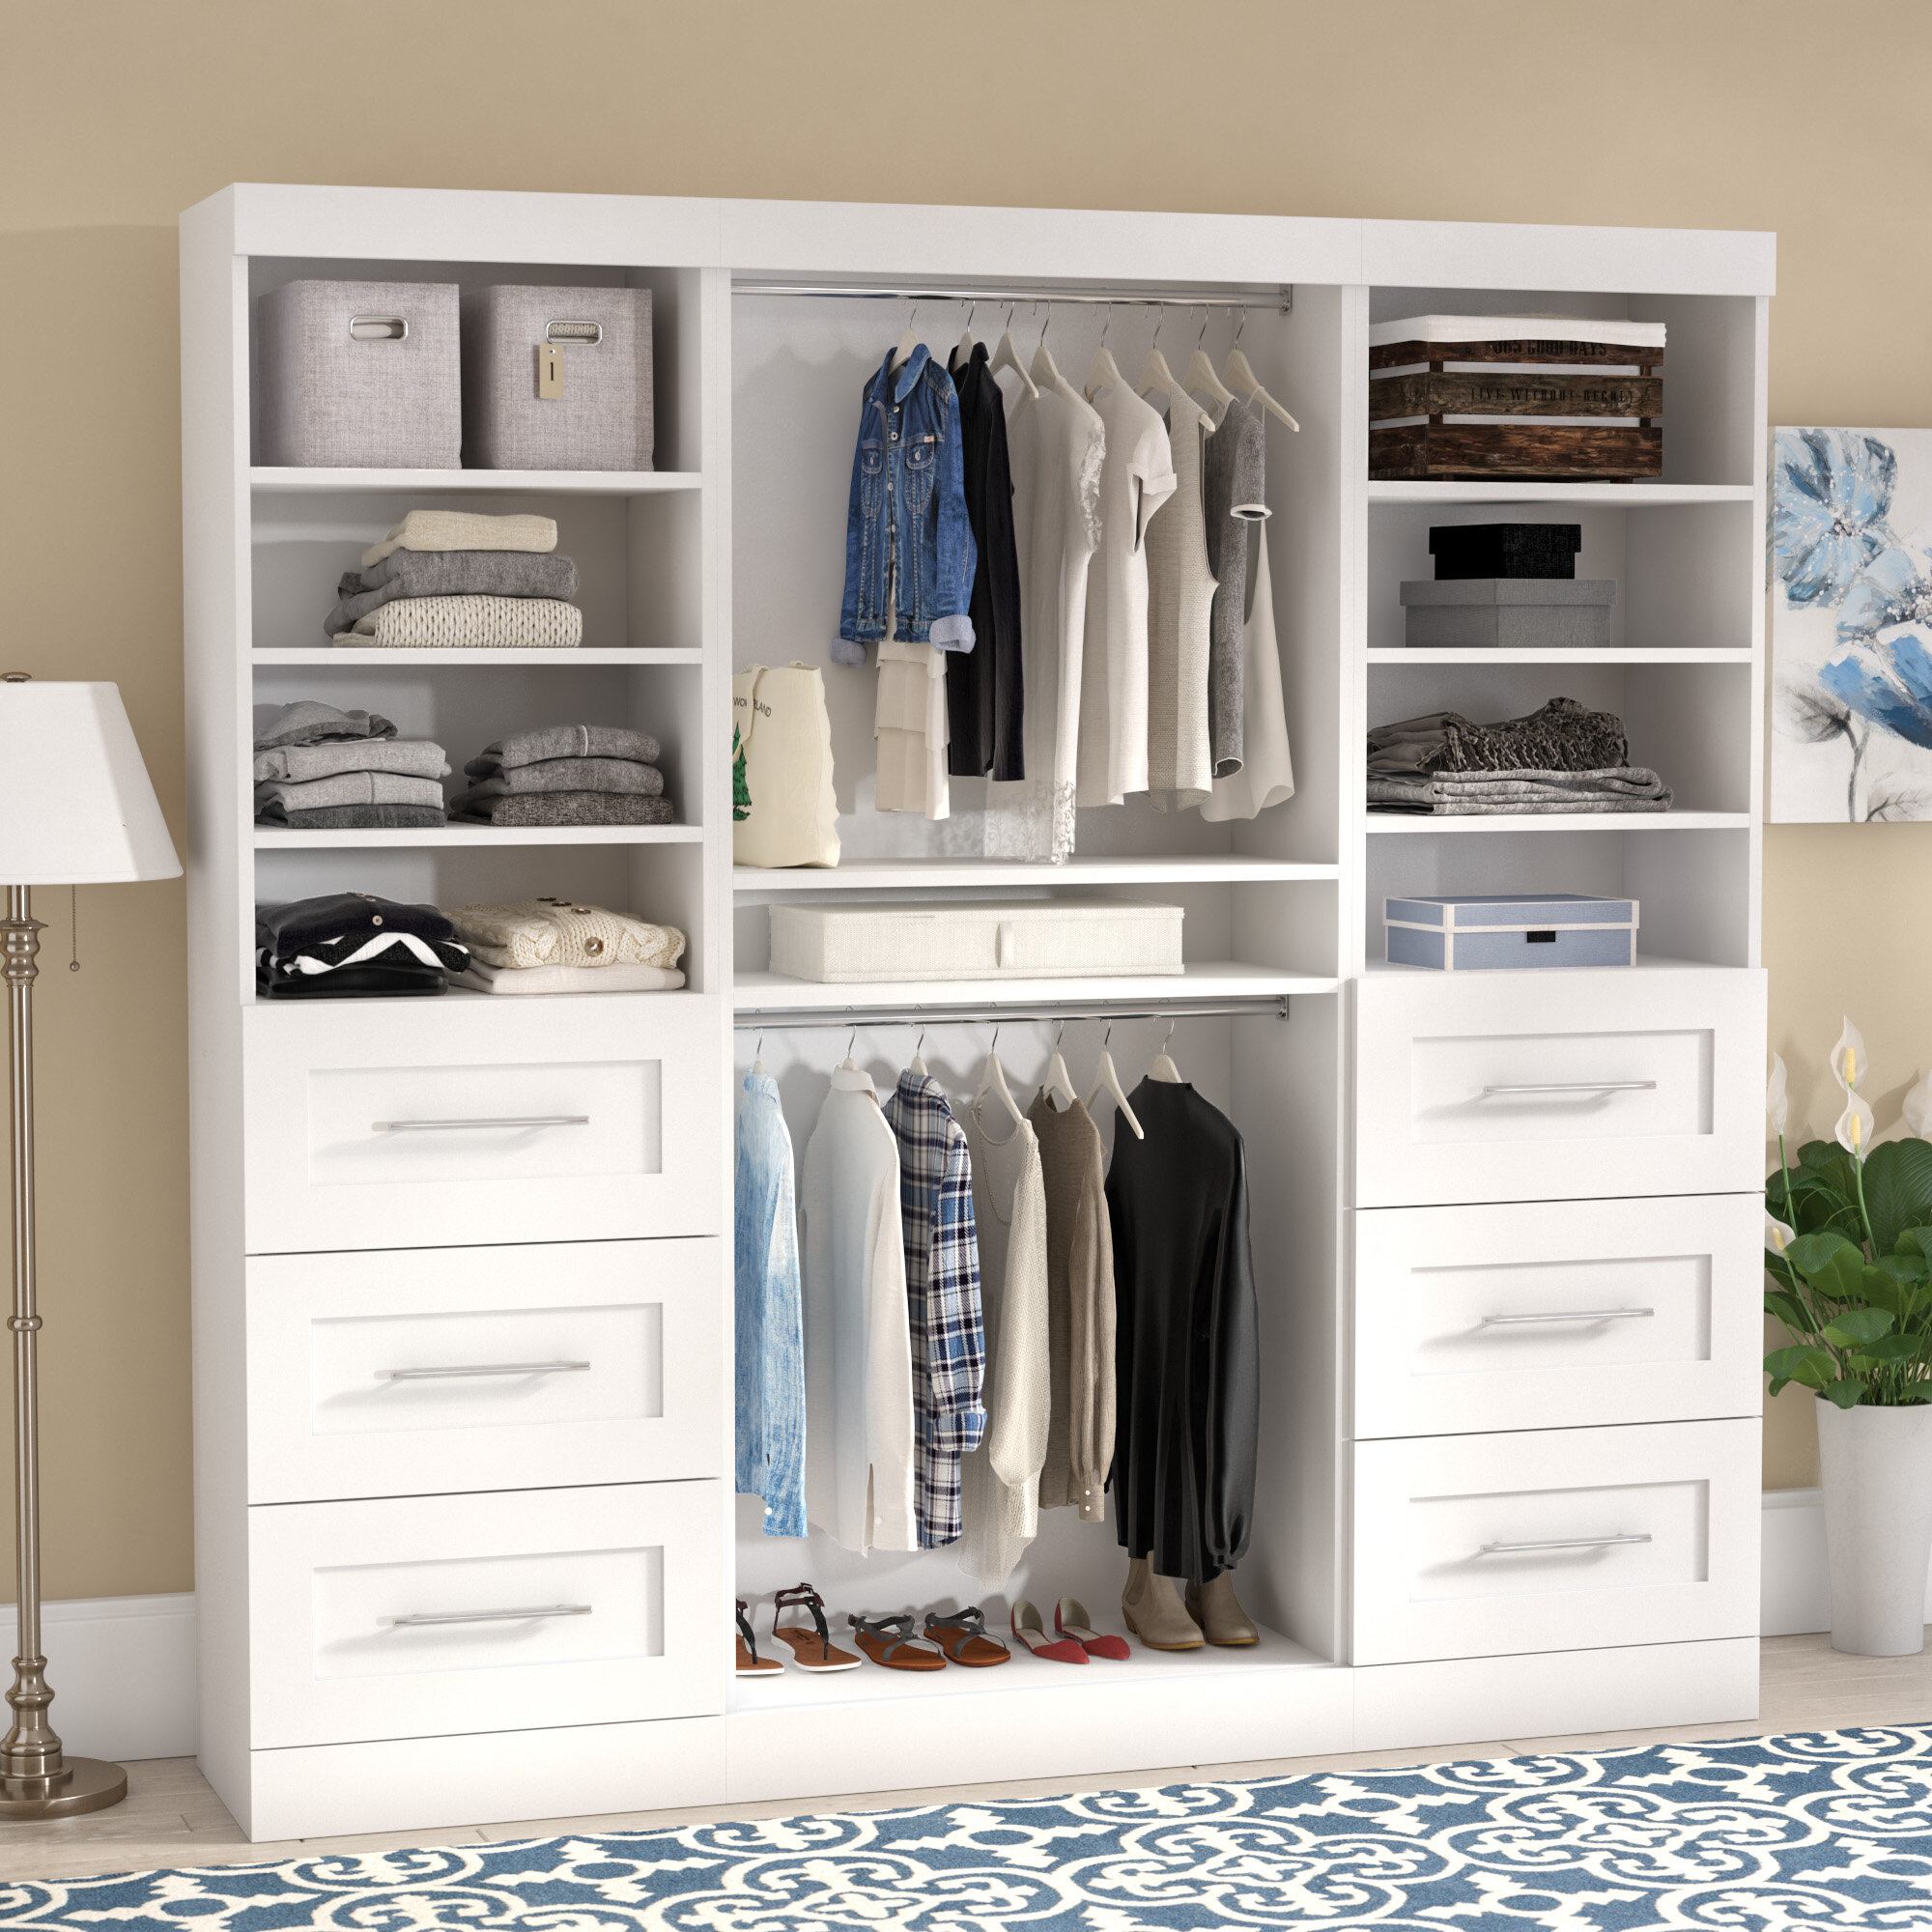 instructions home roth allen design closet ideas system and